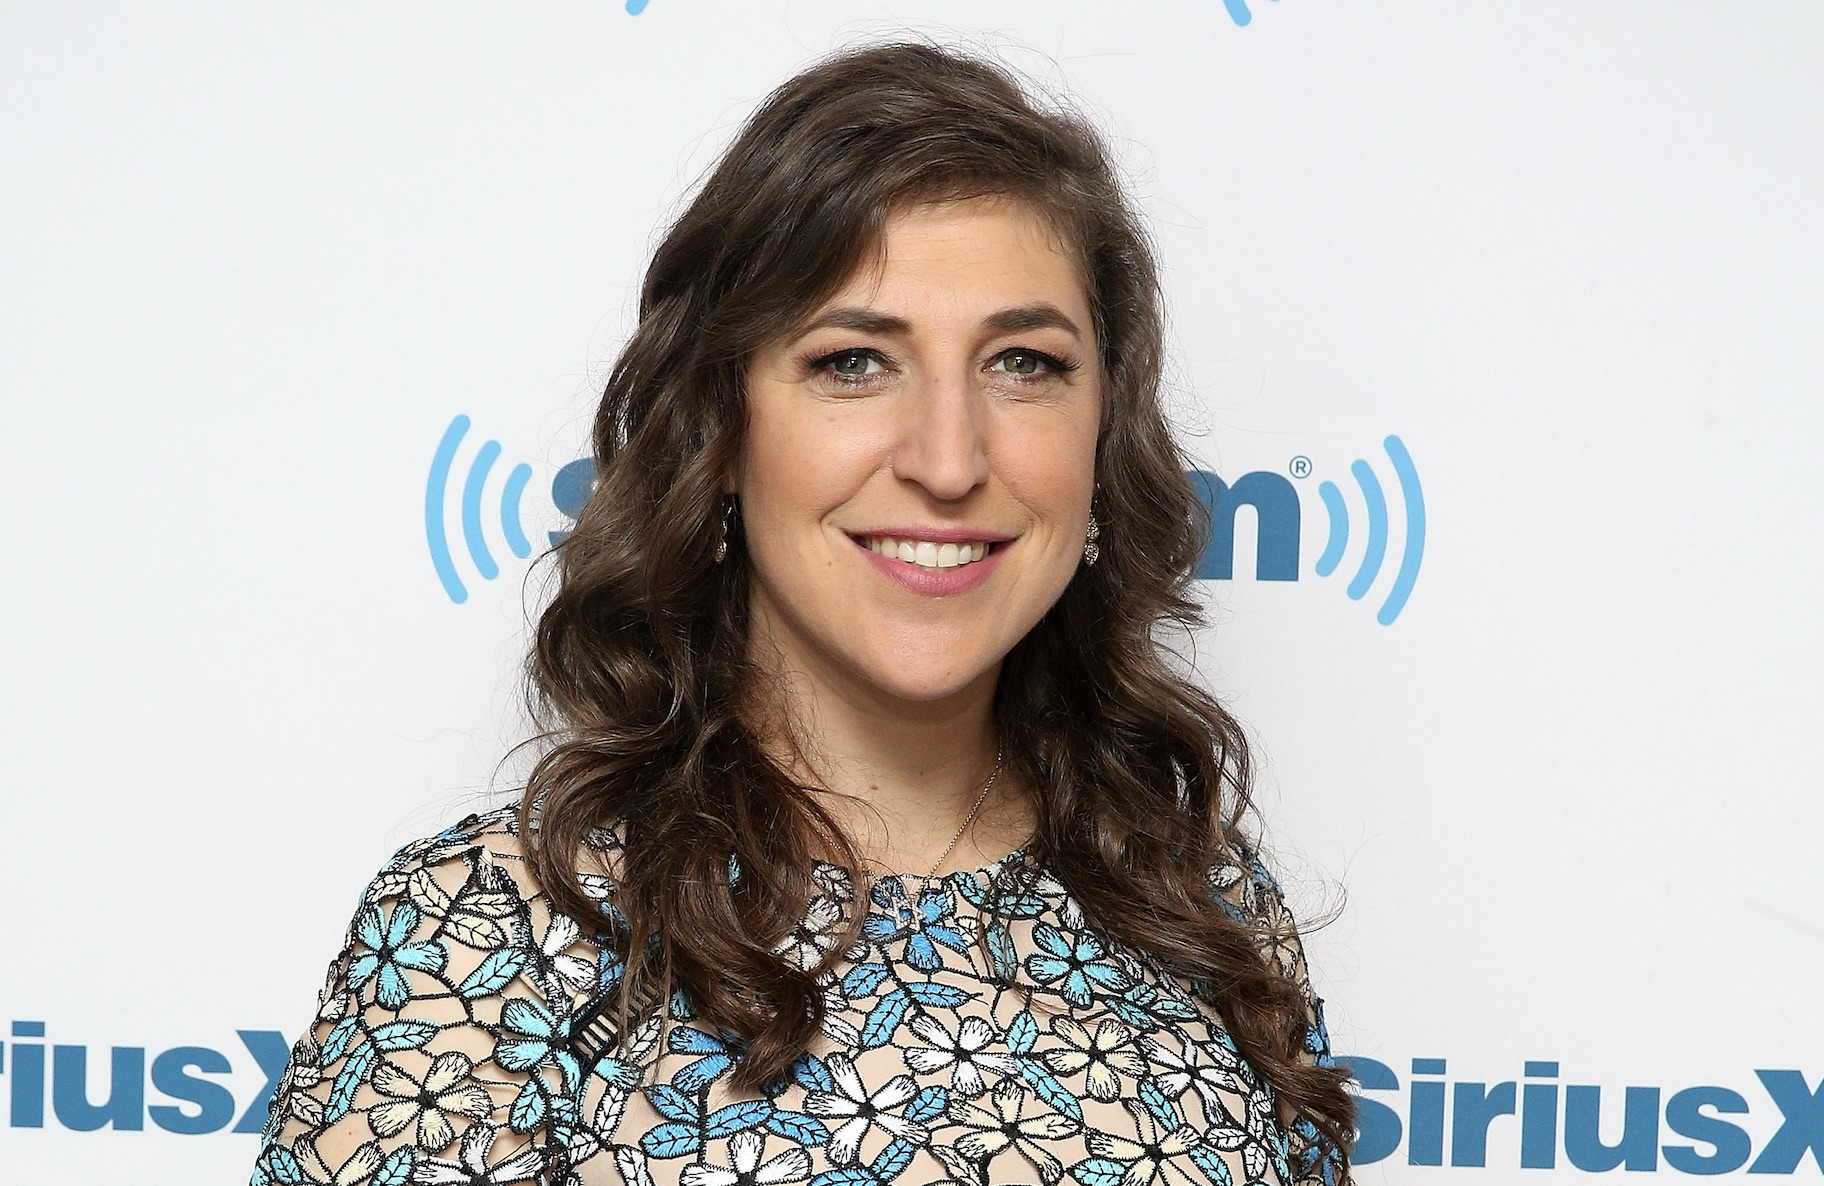 <em>Big Bang Theory</em> star Mayim Bialik revealed she's going through a major breakup, and we hope she's okay